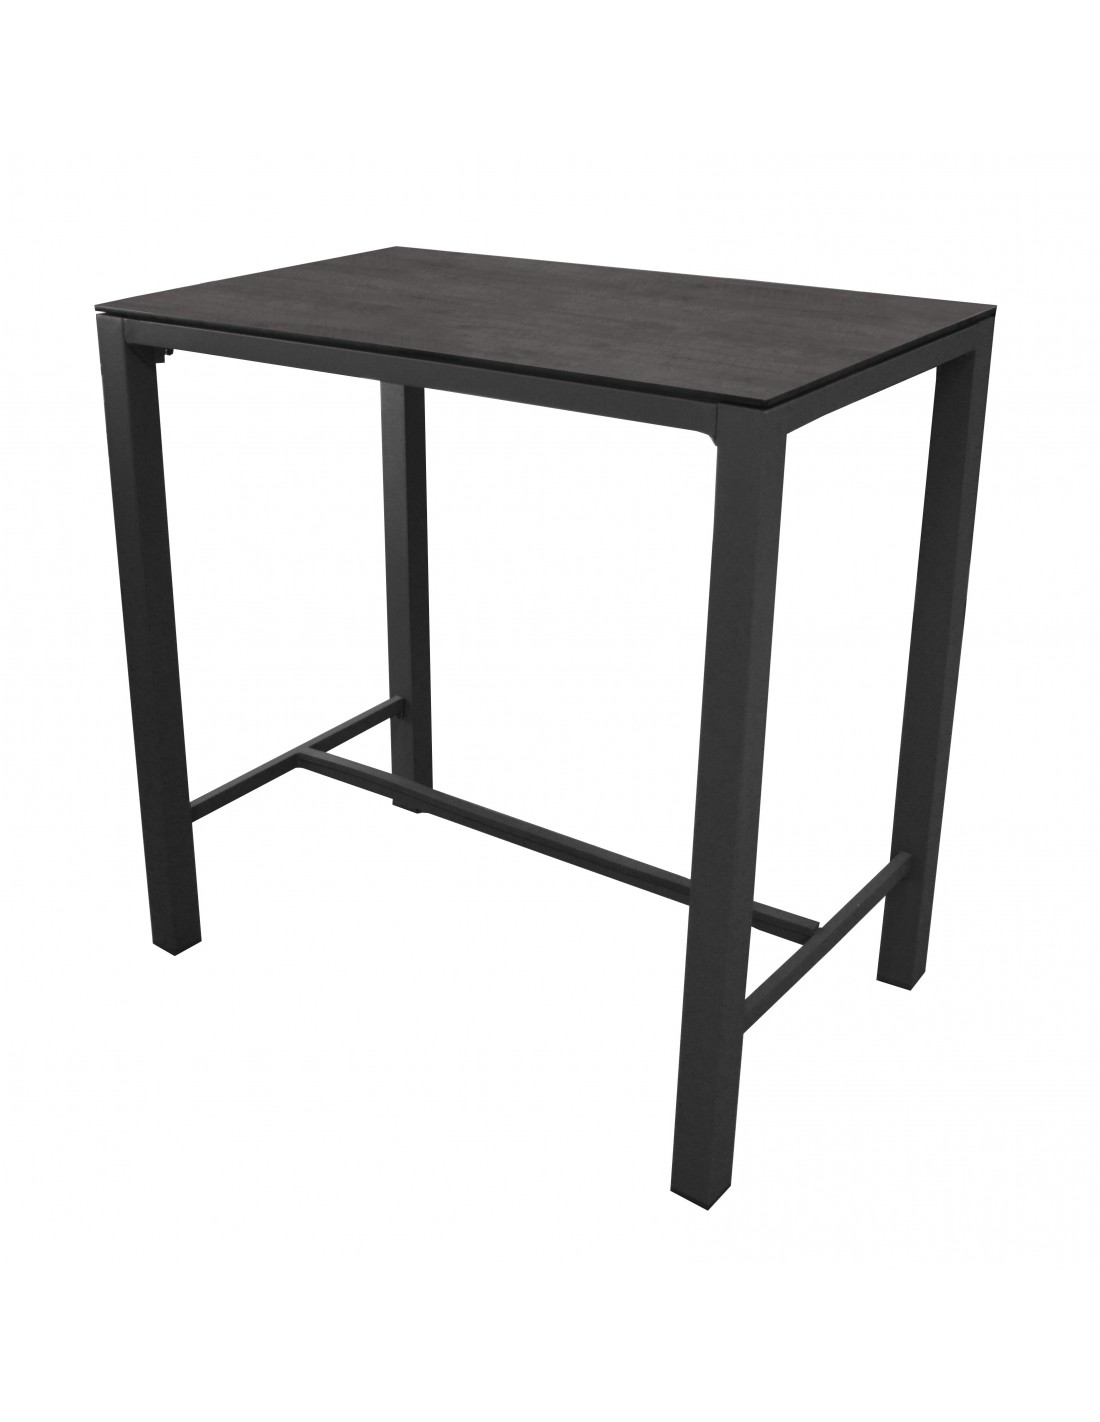 Table haute stoneo d 39 ext rieur aluminium et plateau hpl for Table exterieur en aluminium